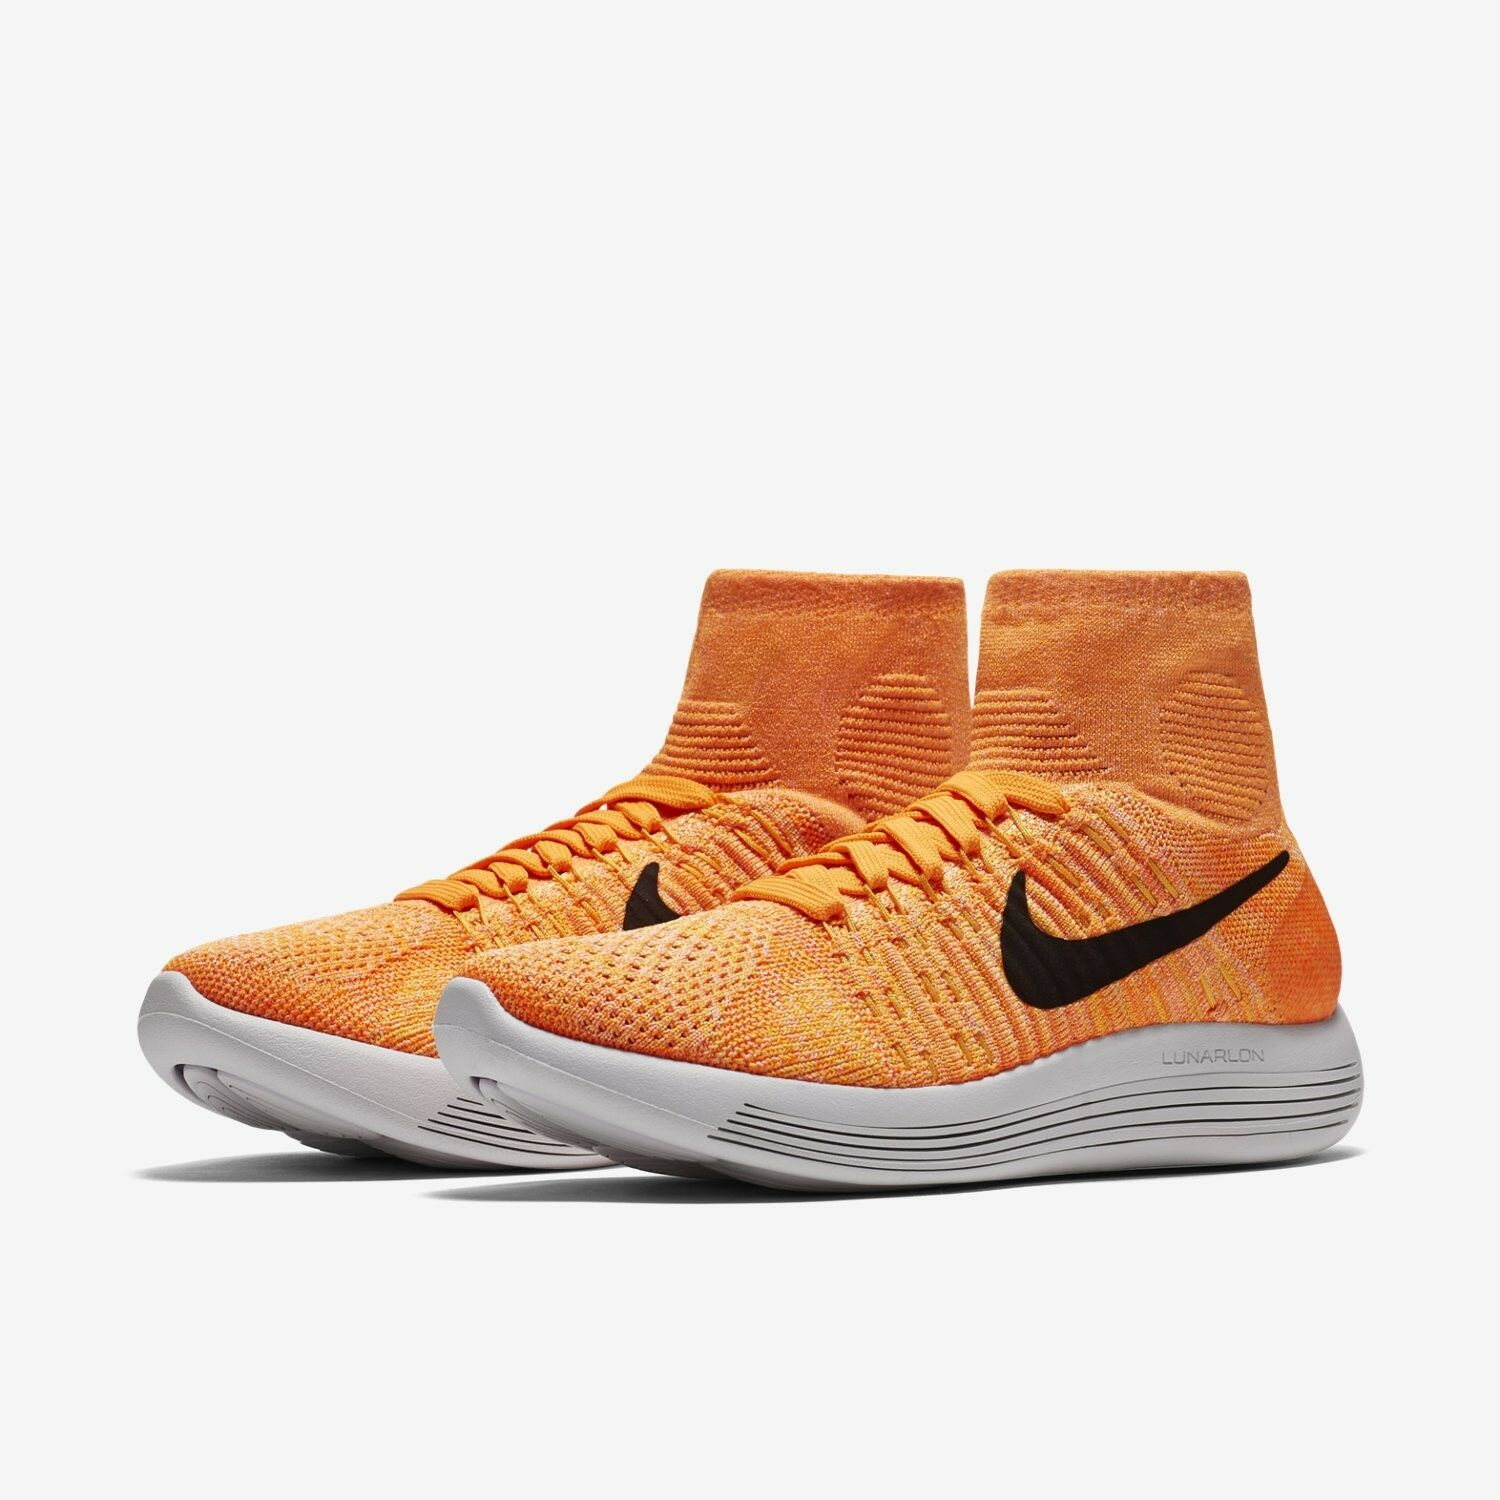 Nike WOMEN'S Lunarepic Flyknit Laser Orange/Bright Citrus SIZE 9.5 BRAND NEW